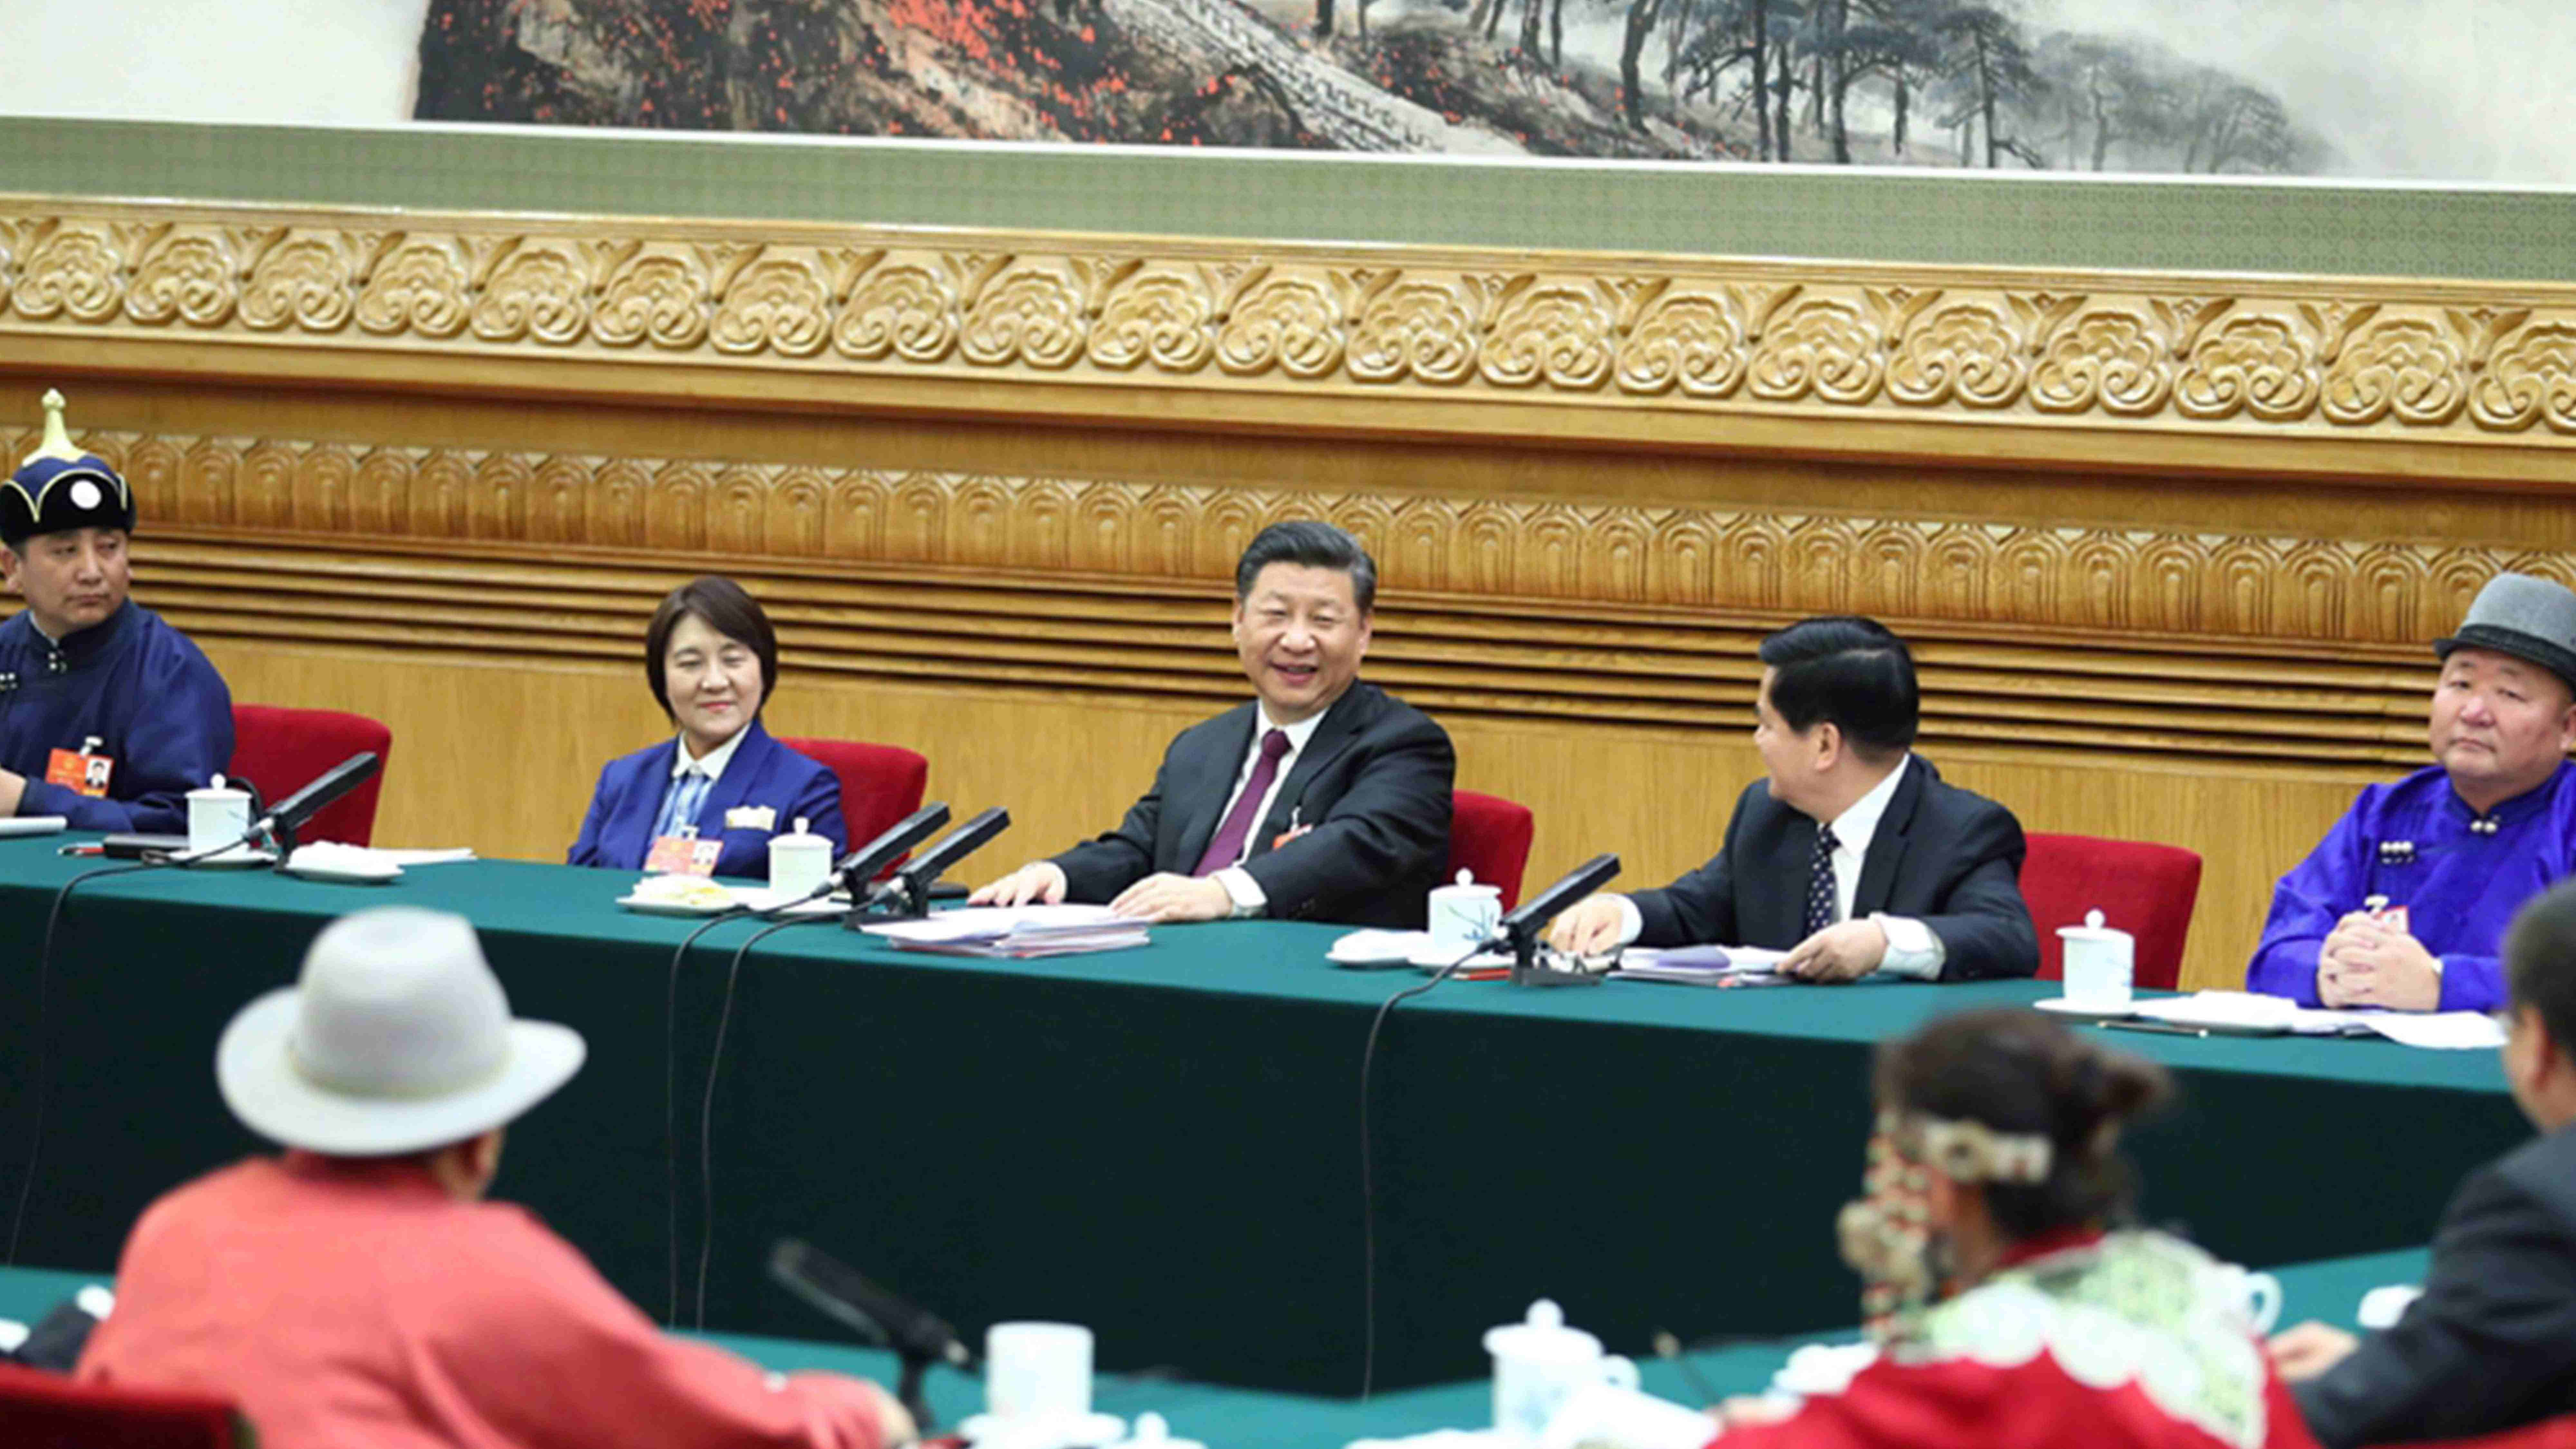 Xi stresses the promotion of high quality economy and poverty alleviation